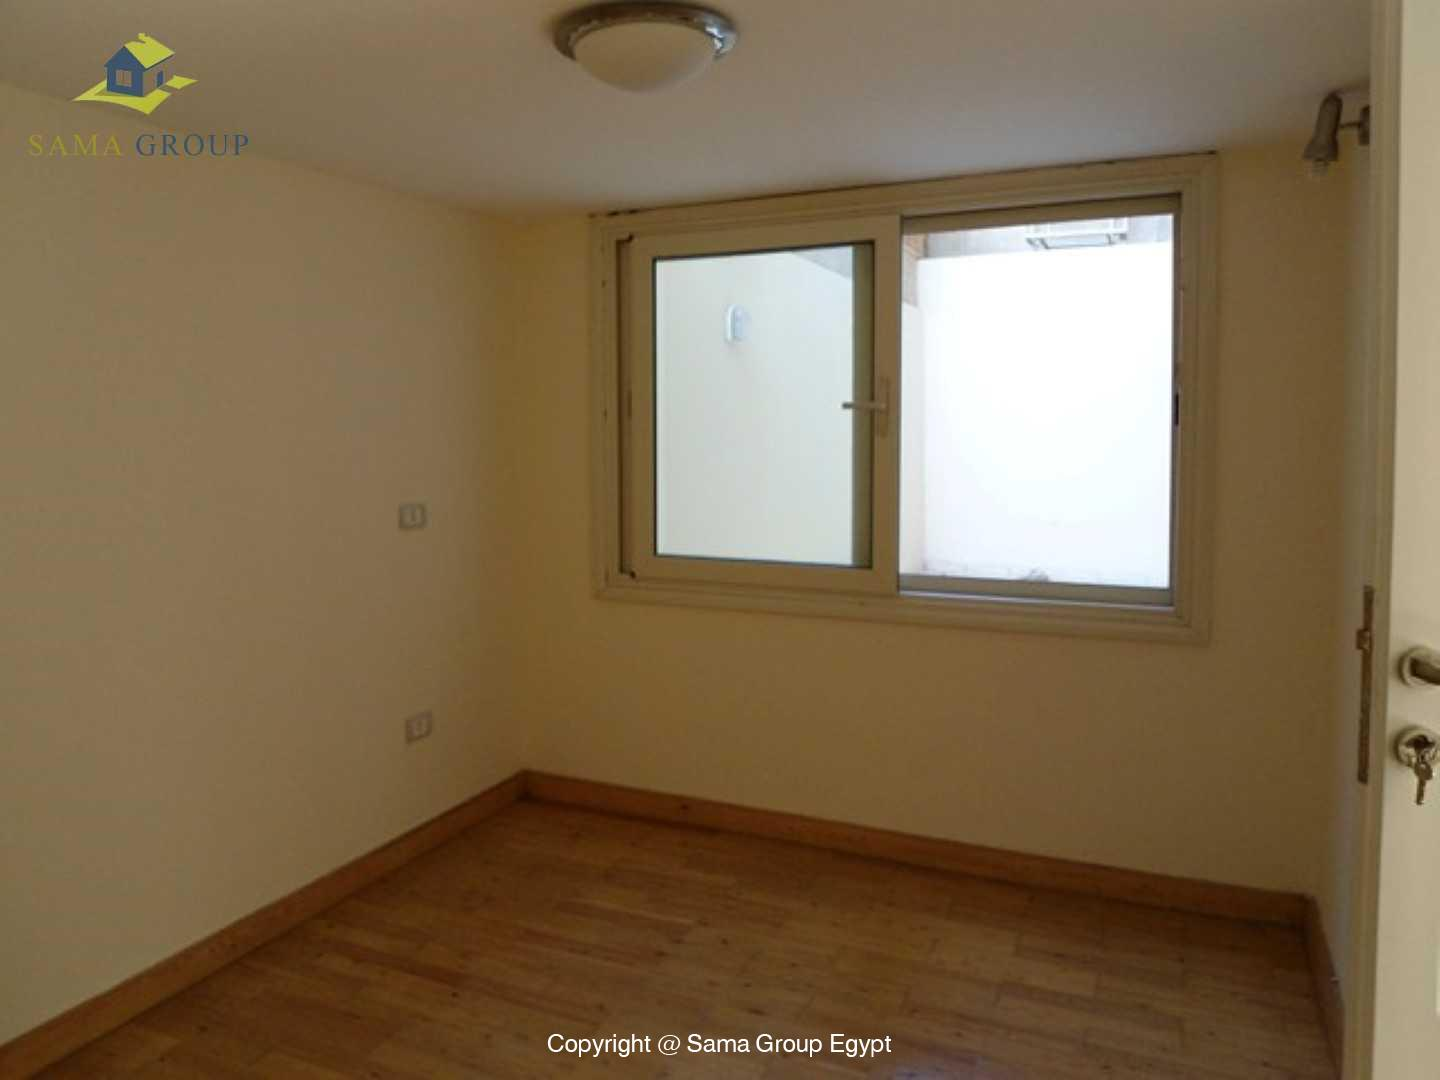 Ground Floor Duplex With Pool For Rent In Maadi Sarayat,Semi furnished,Ground Floor NO #14